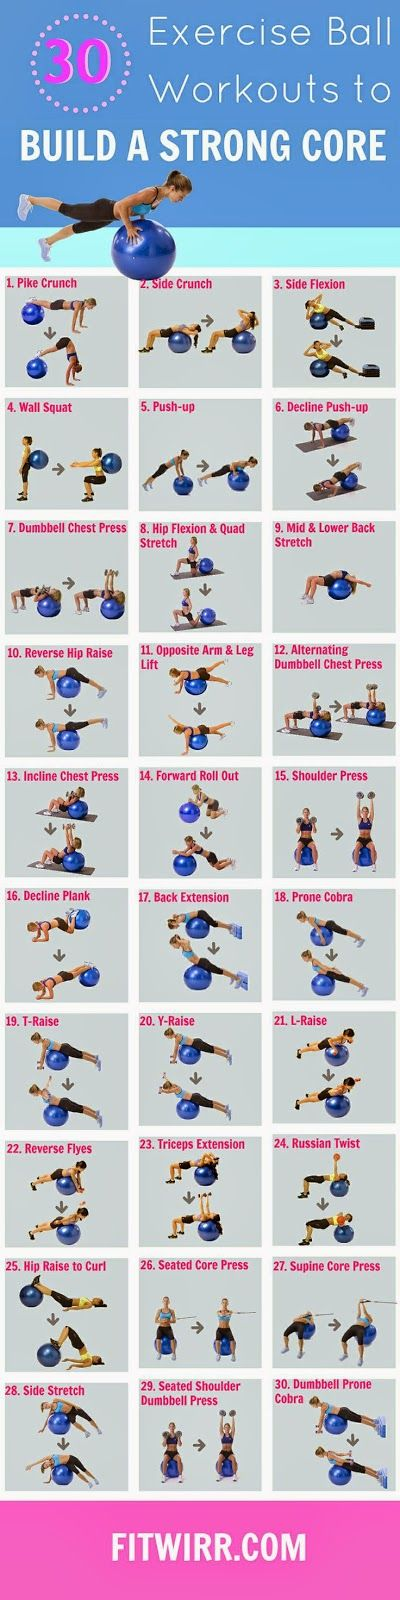 Would you like to build a strong core? You can do it using the exercise ball as shown in the pin... If you like it, repin it :-) #FastSimpleFitness